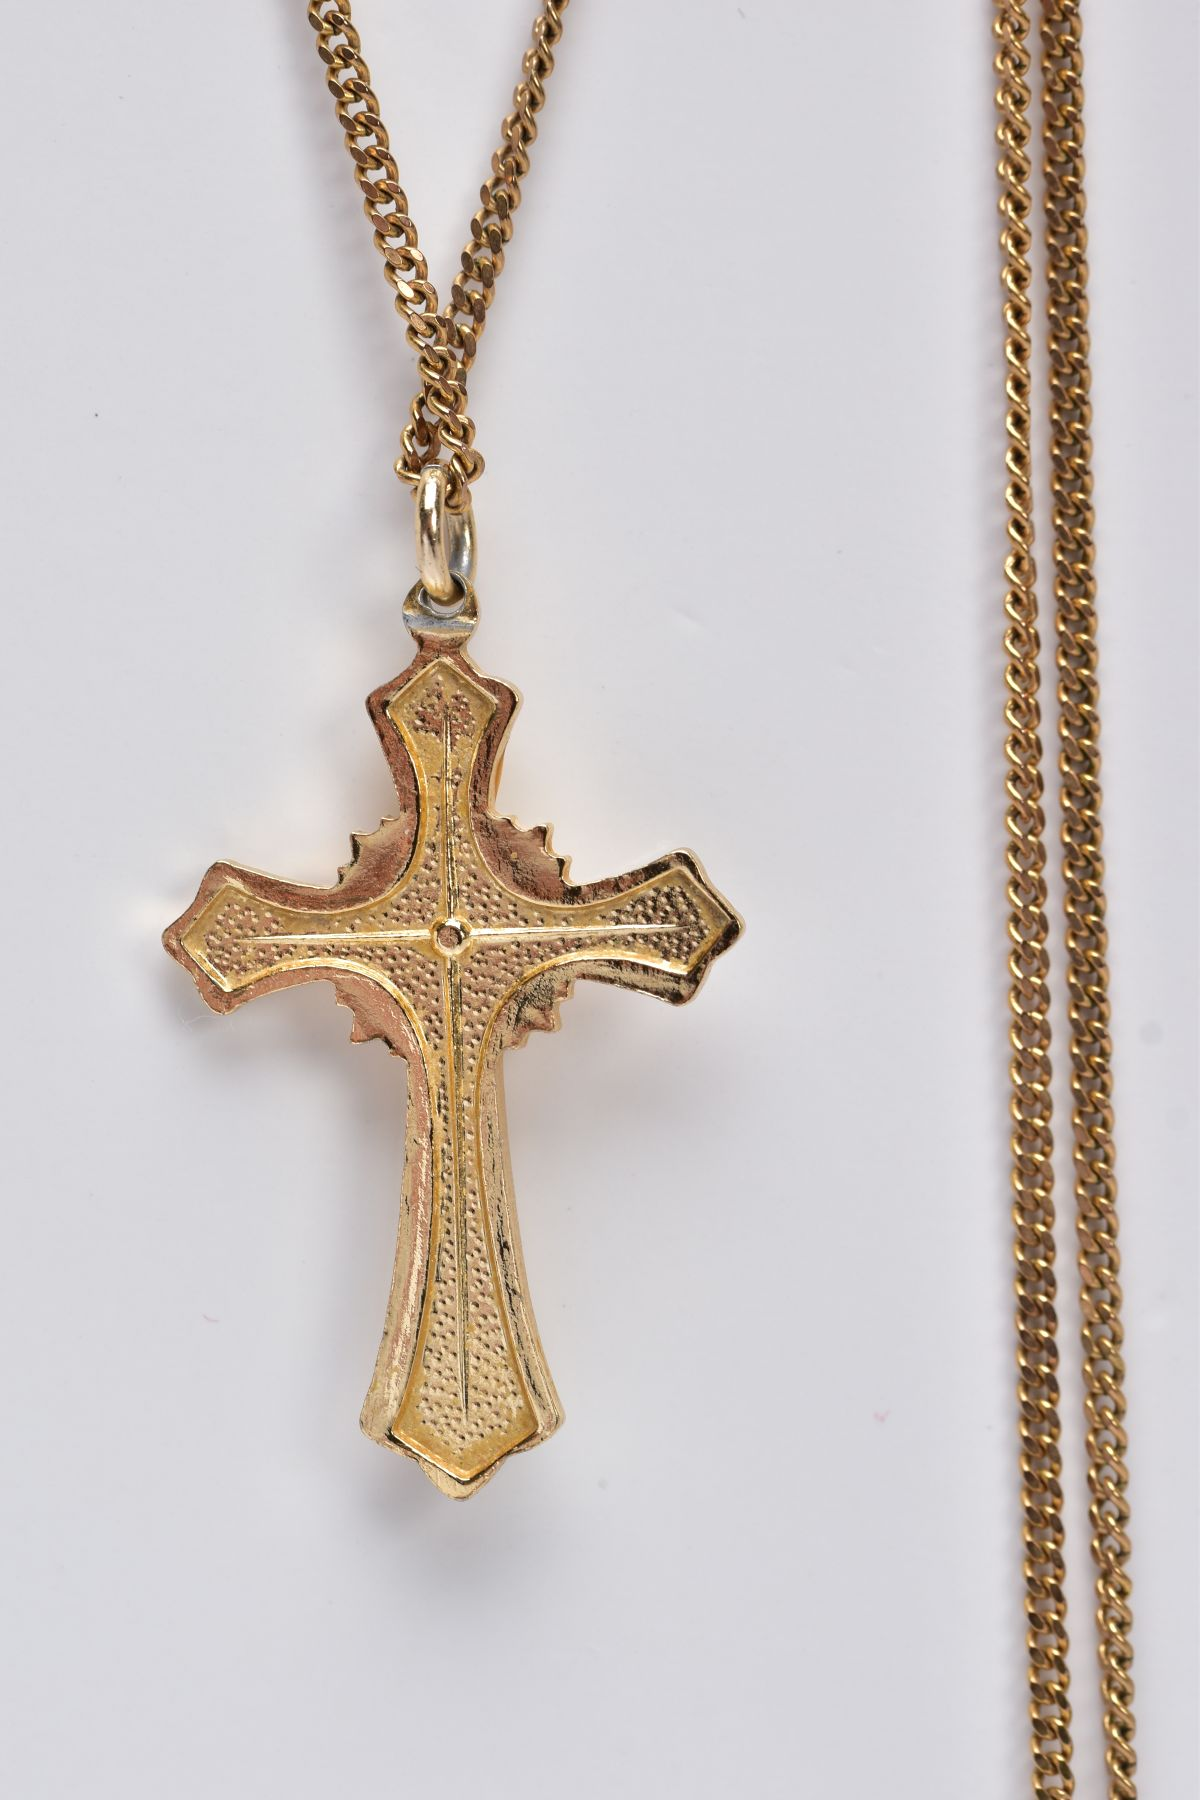 A 9CT GOLD CHAIN WITH A YELLOW METAL CROSS PENDANT, the curb link chain fitted with a spring - Image 4 of 4